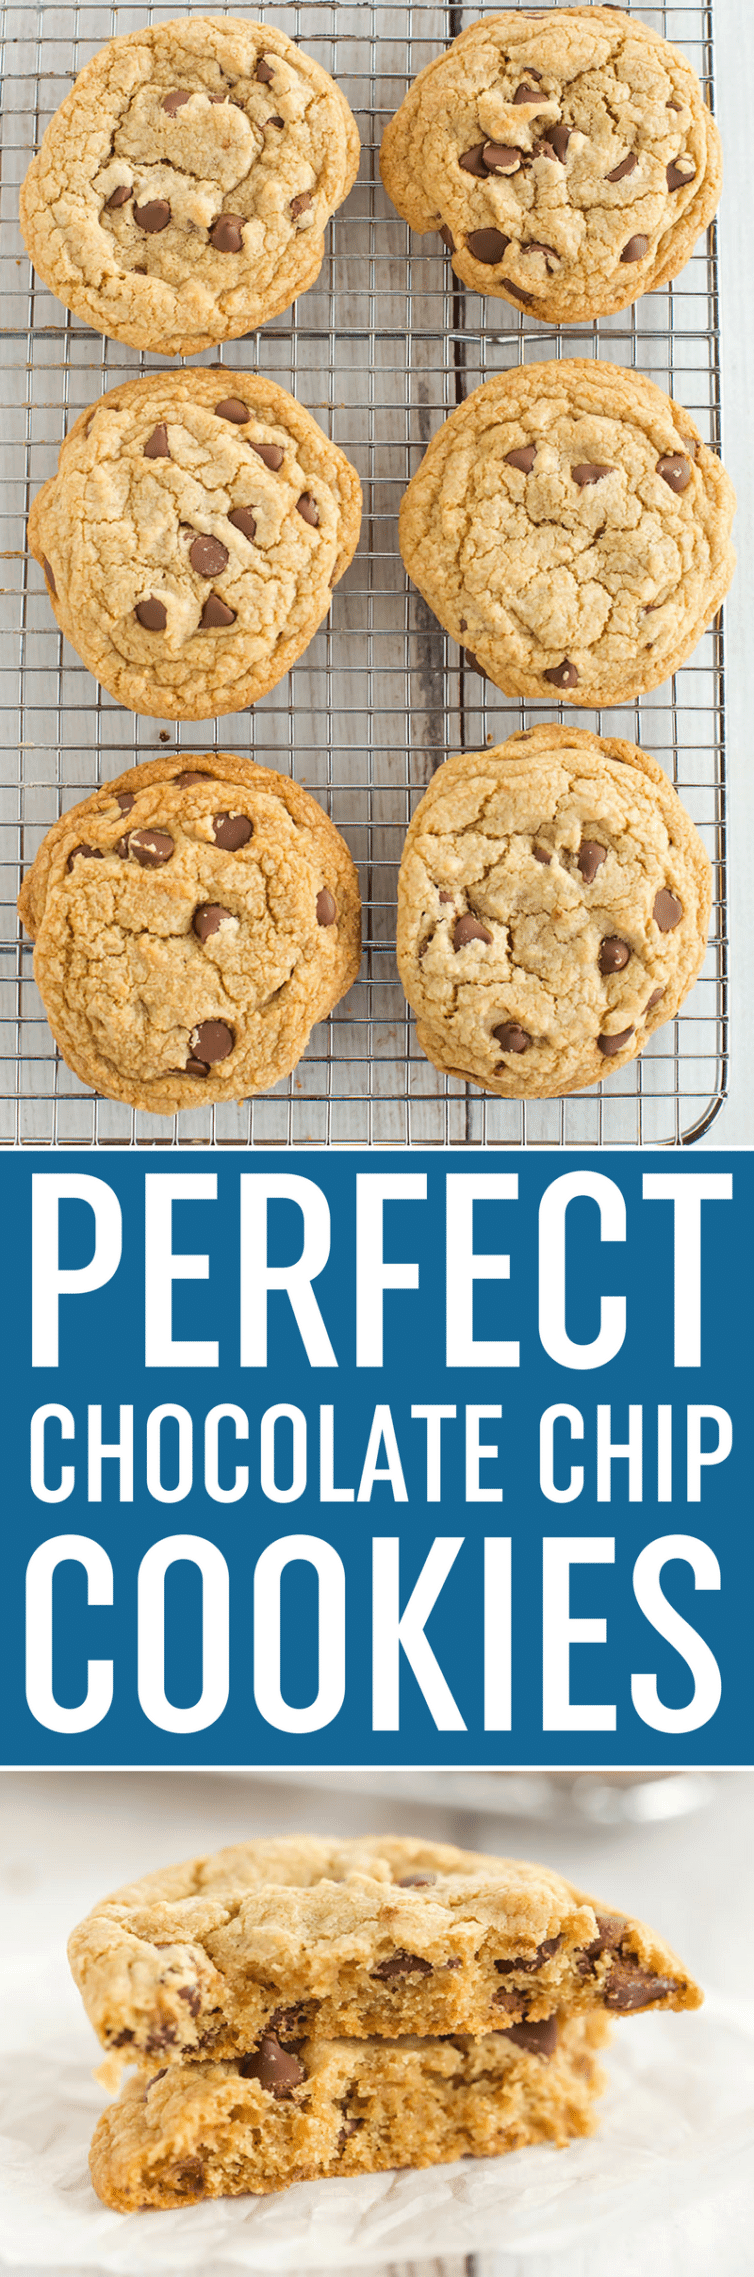 Cook's Illustrated Perfect Chocolate Chip Cookies are large, bakery-style chocolate chip cookies made with browned butter and dark brown sugar for a toffee-like flavor.